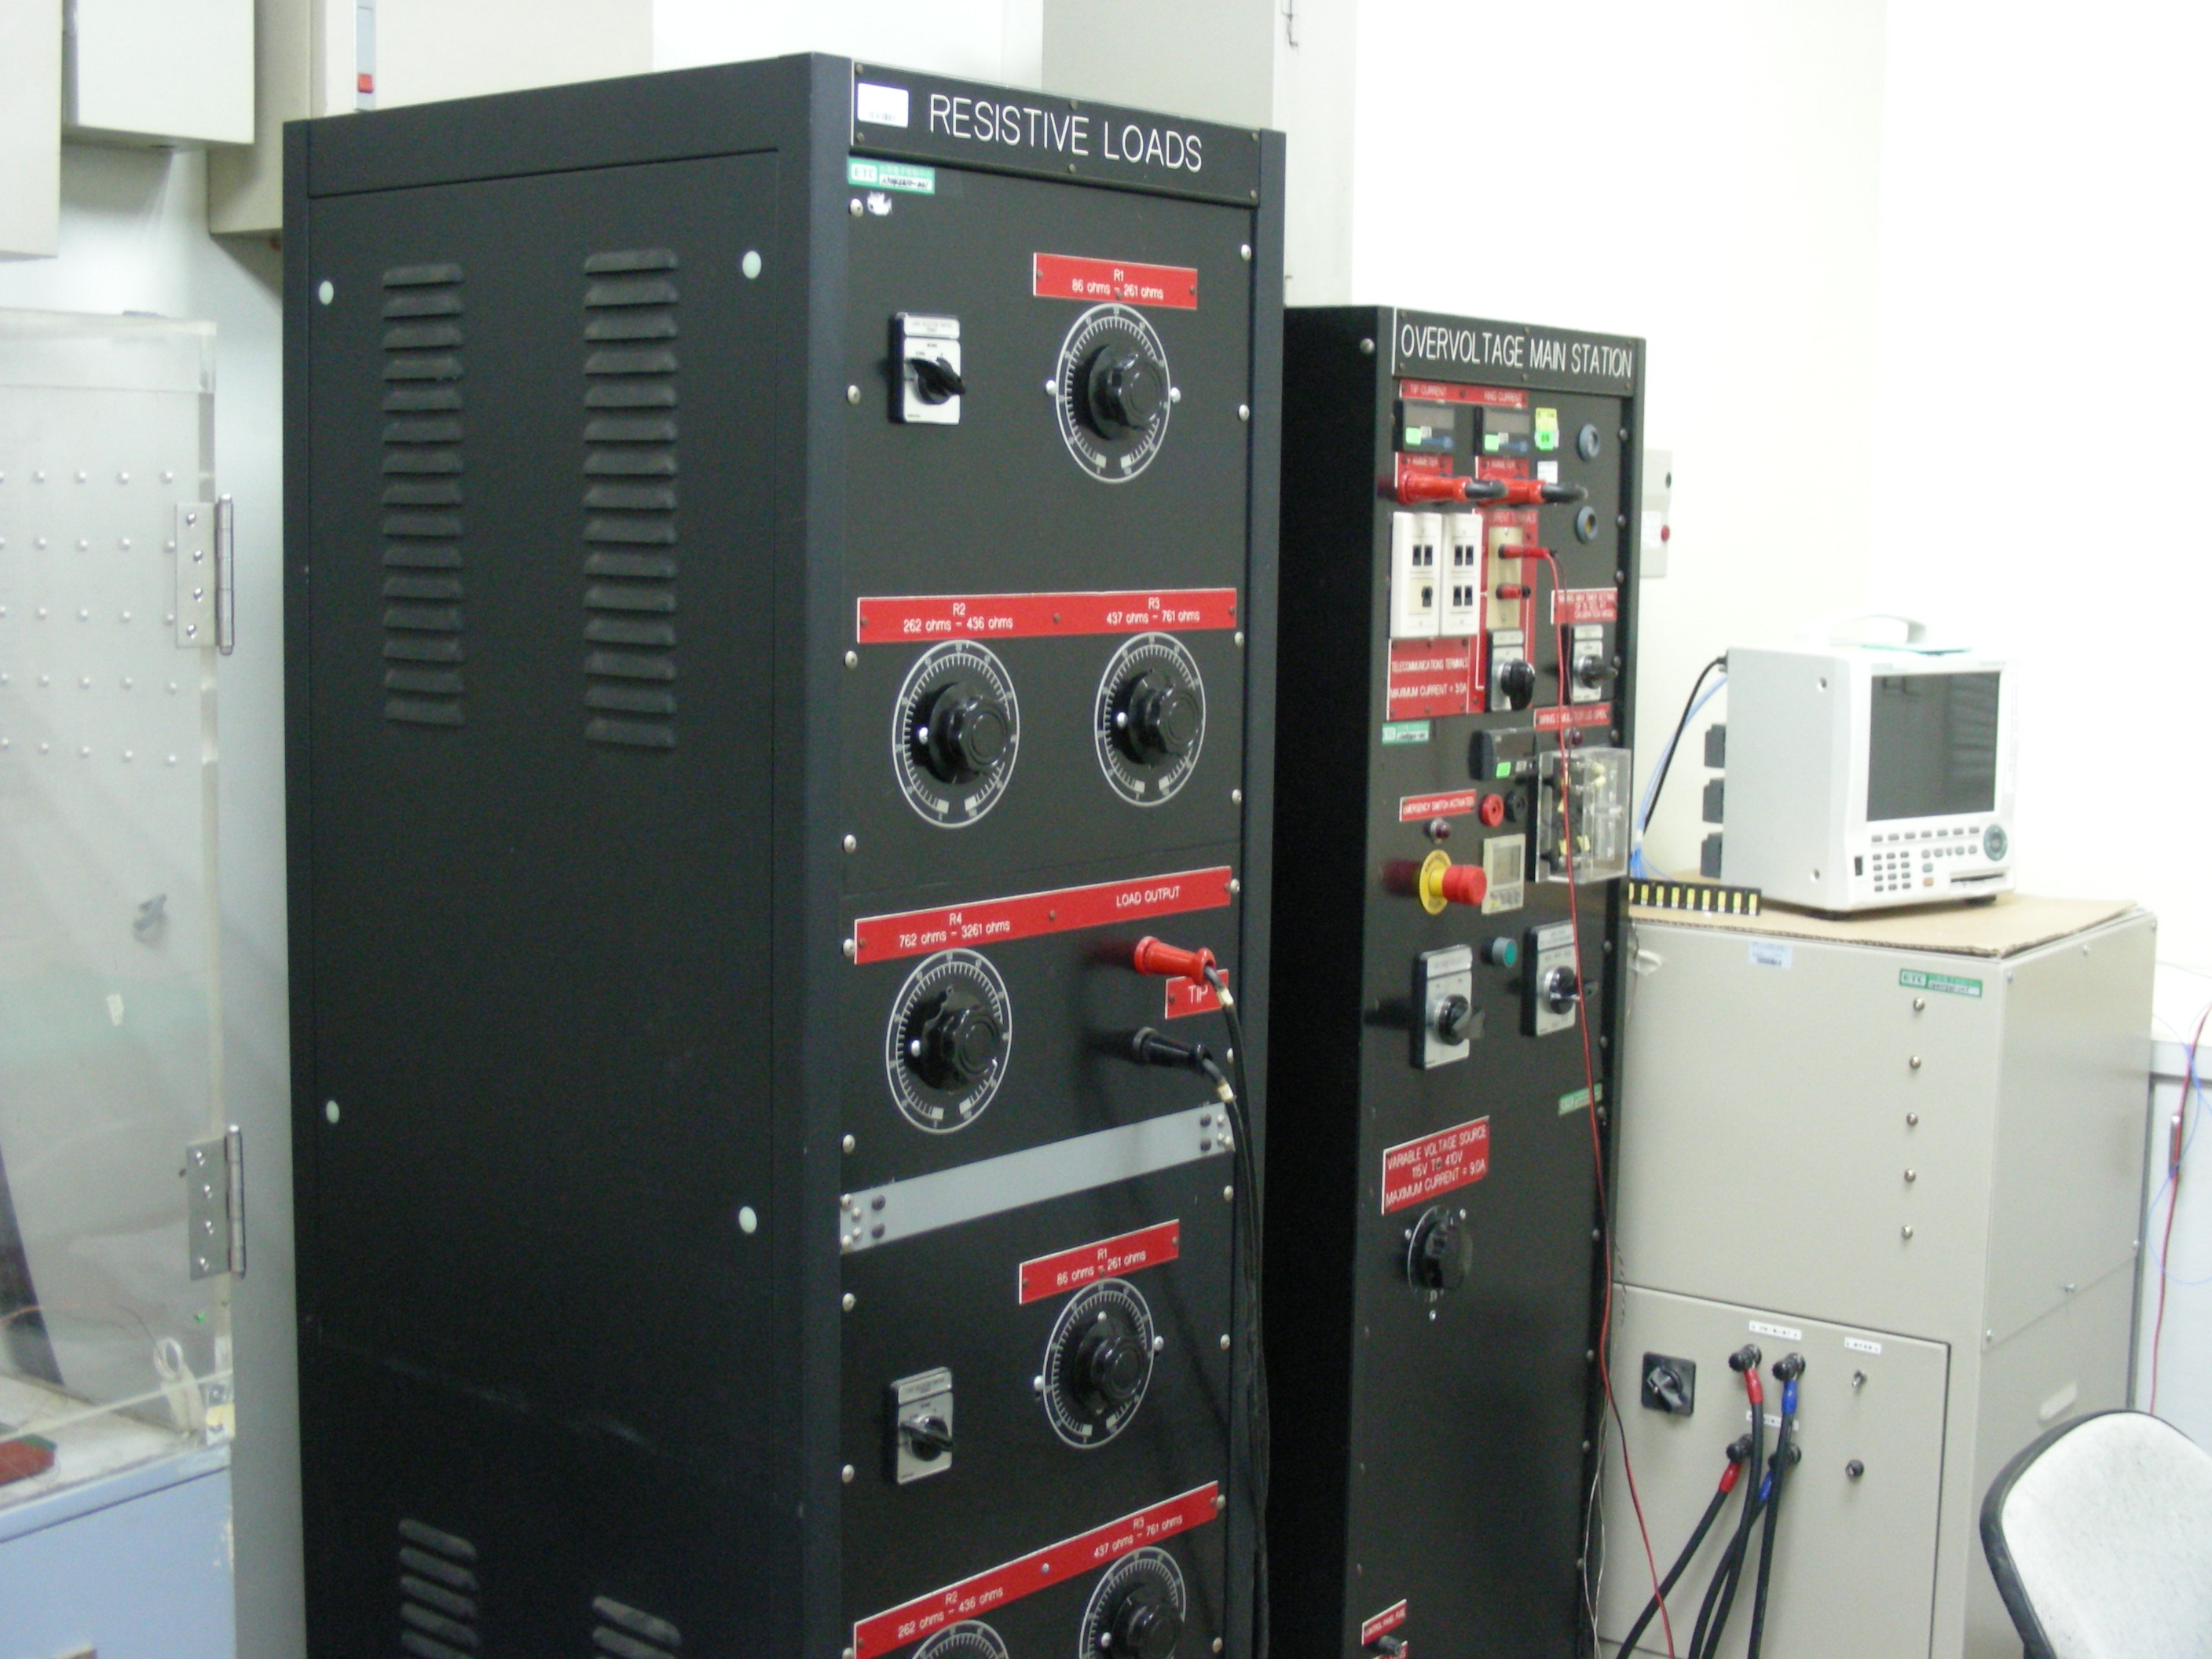 Electronics Test Equipment Supply : Portable appliance testing equipment from test and tag supplies